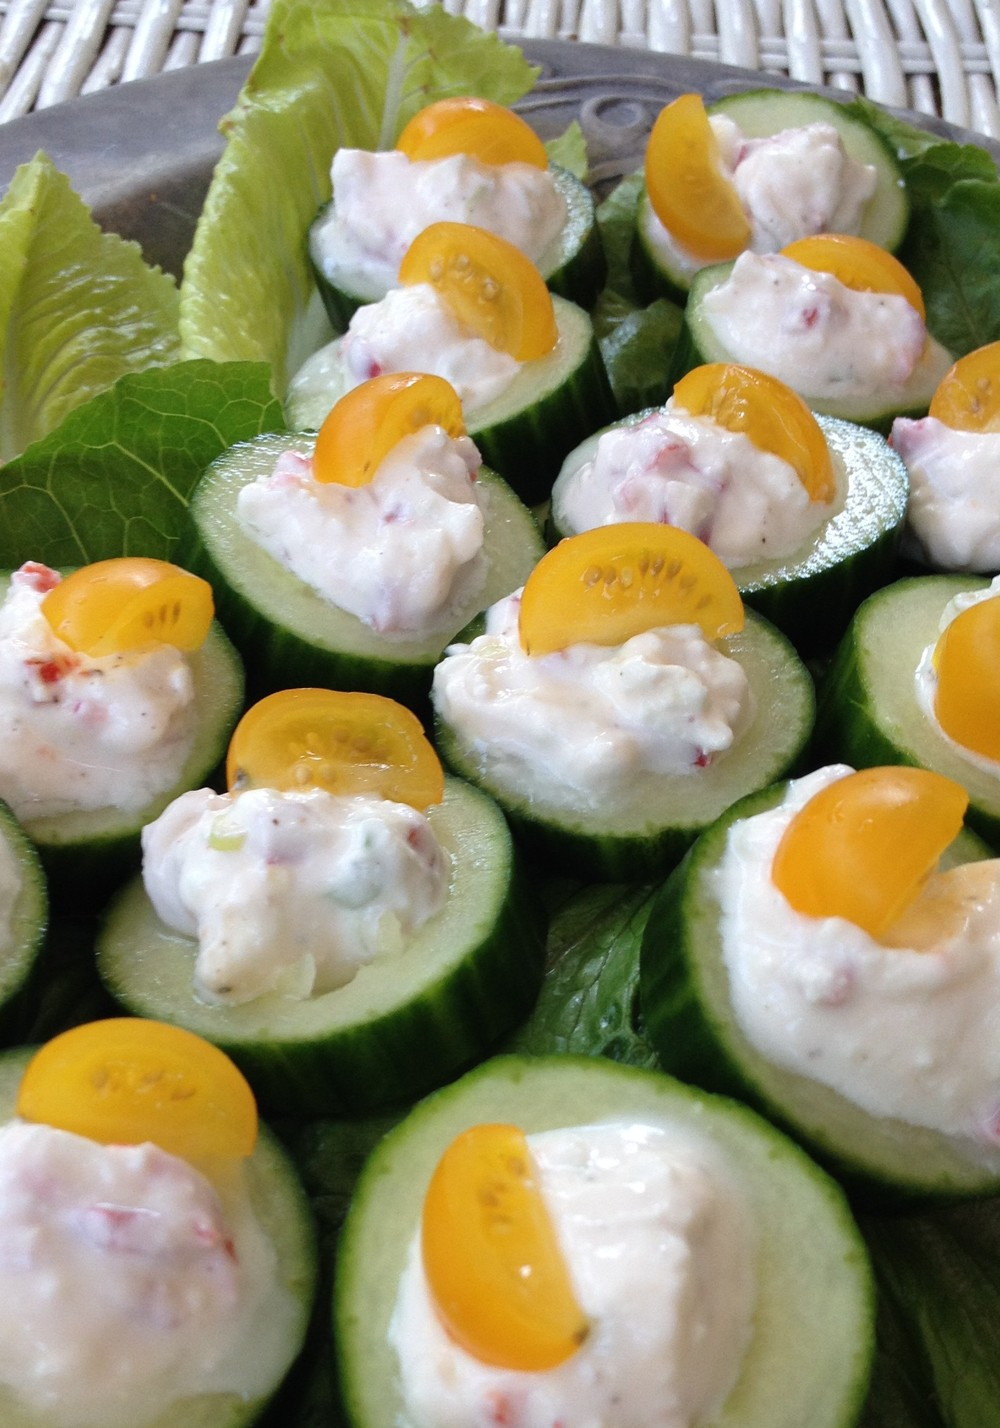 Cucumbers topped with Feta, yogurt, chili & scallion, garnished with tiny slices of yellow tomato. Fresh, light & perfect for summer parties.